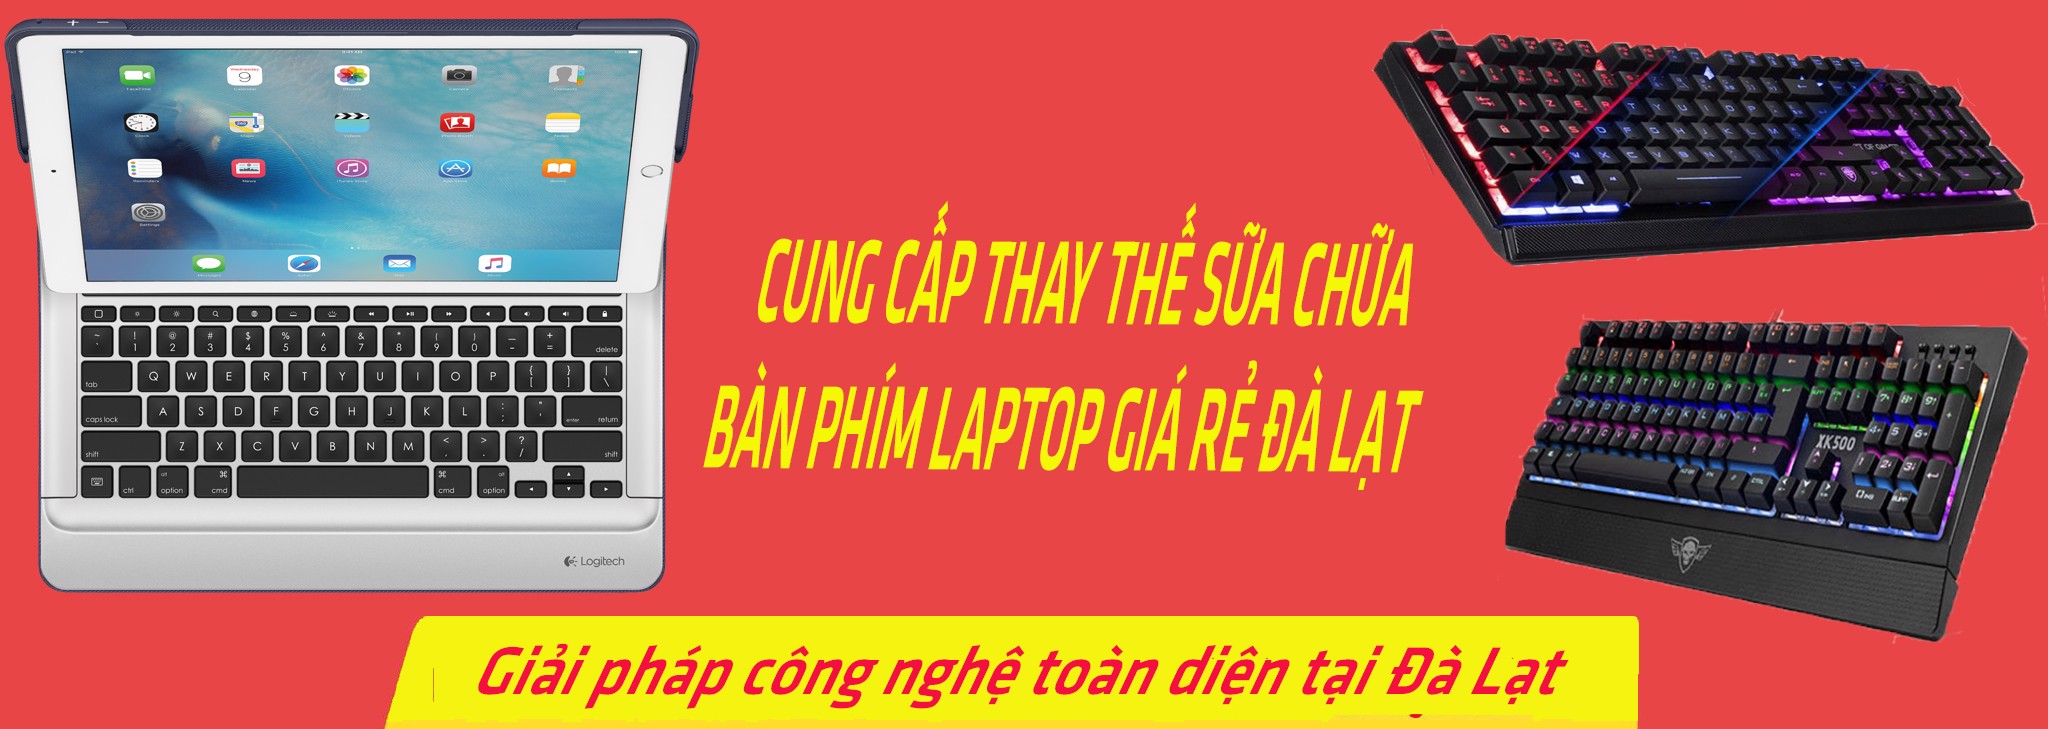 https://file.hstatic.net/1000266242/collection/cung-_cap-thay-the-sua-chua-ban-phim-laptop-gia-re-dalat_51b1fed8b7624f3db5729d863278d6e3.jpg